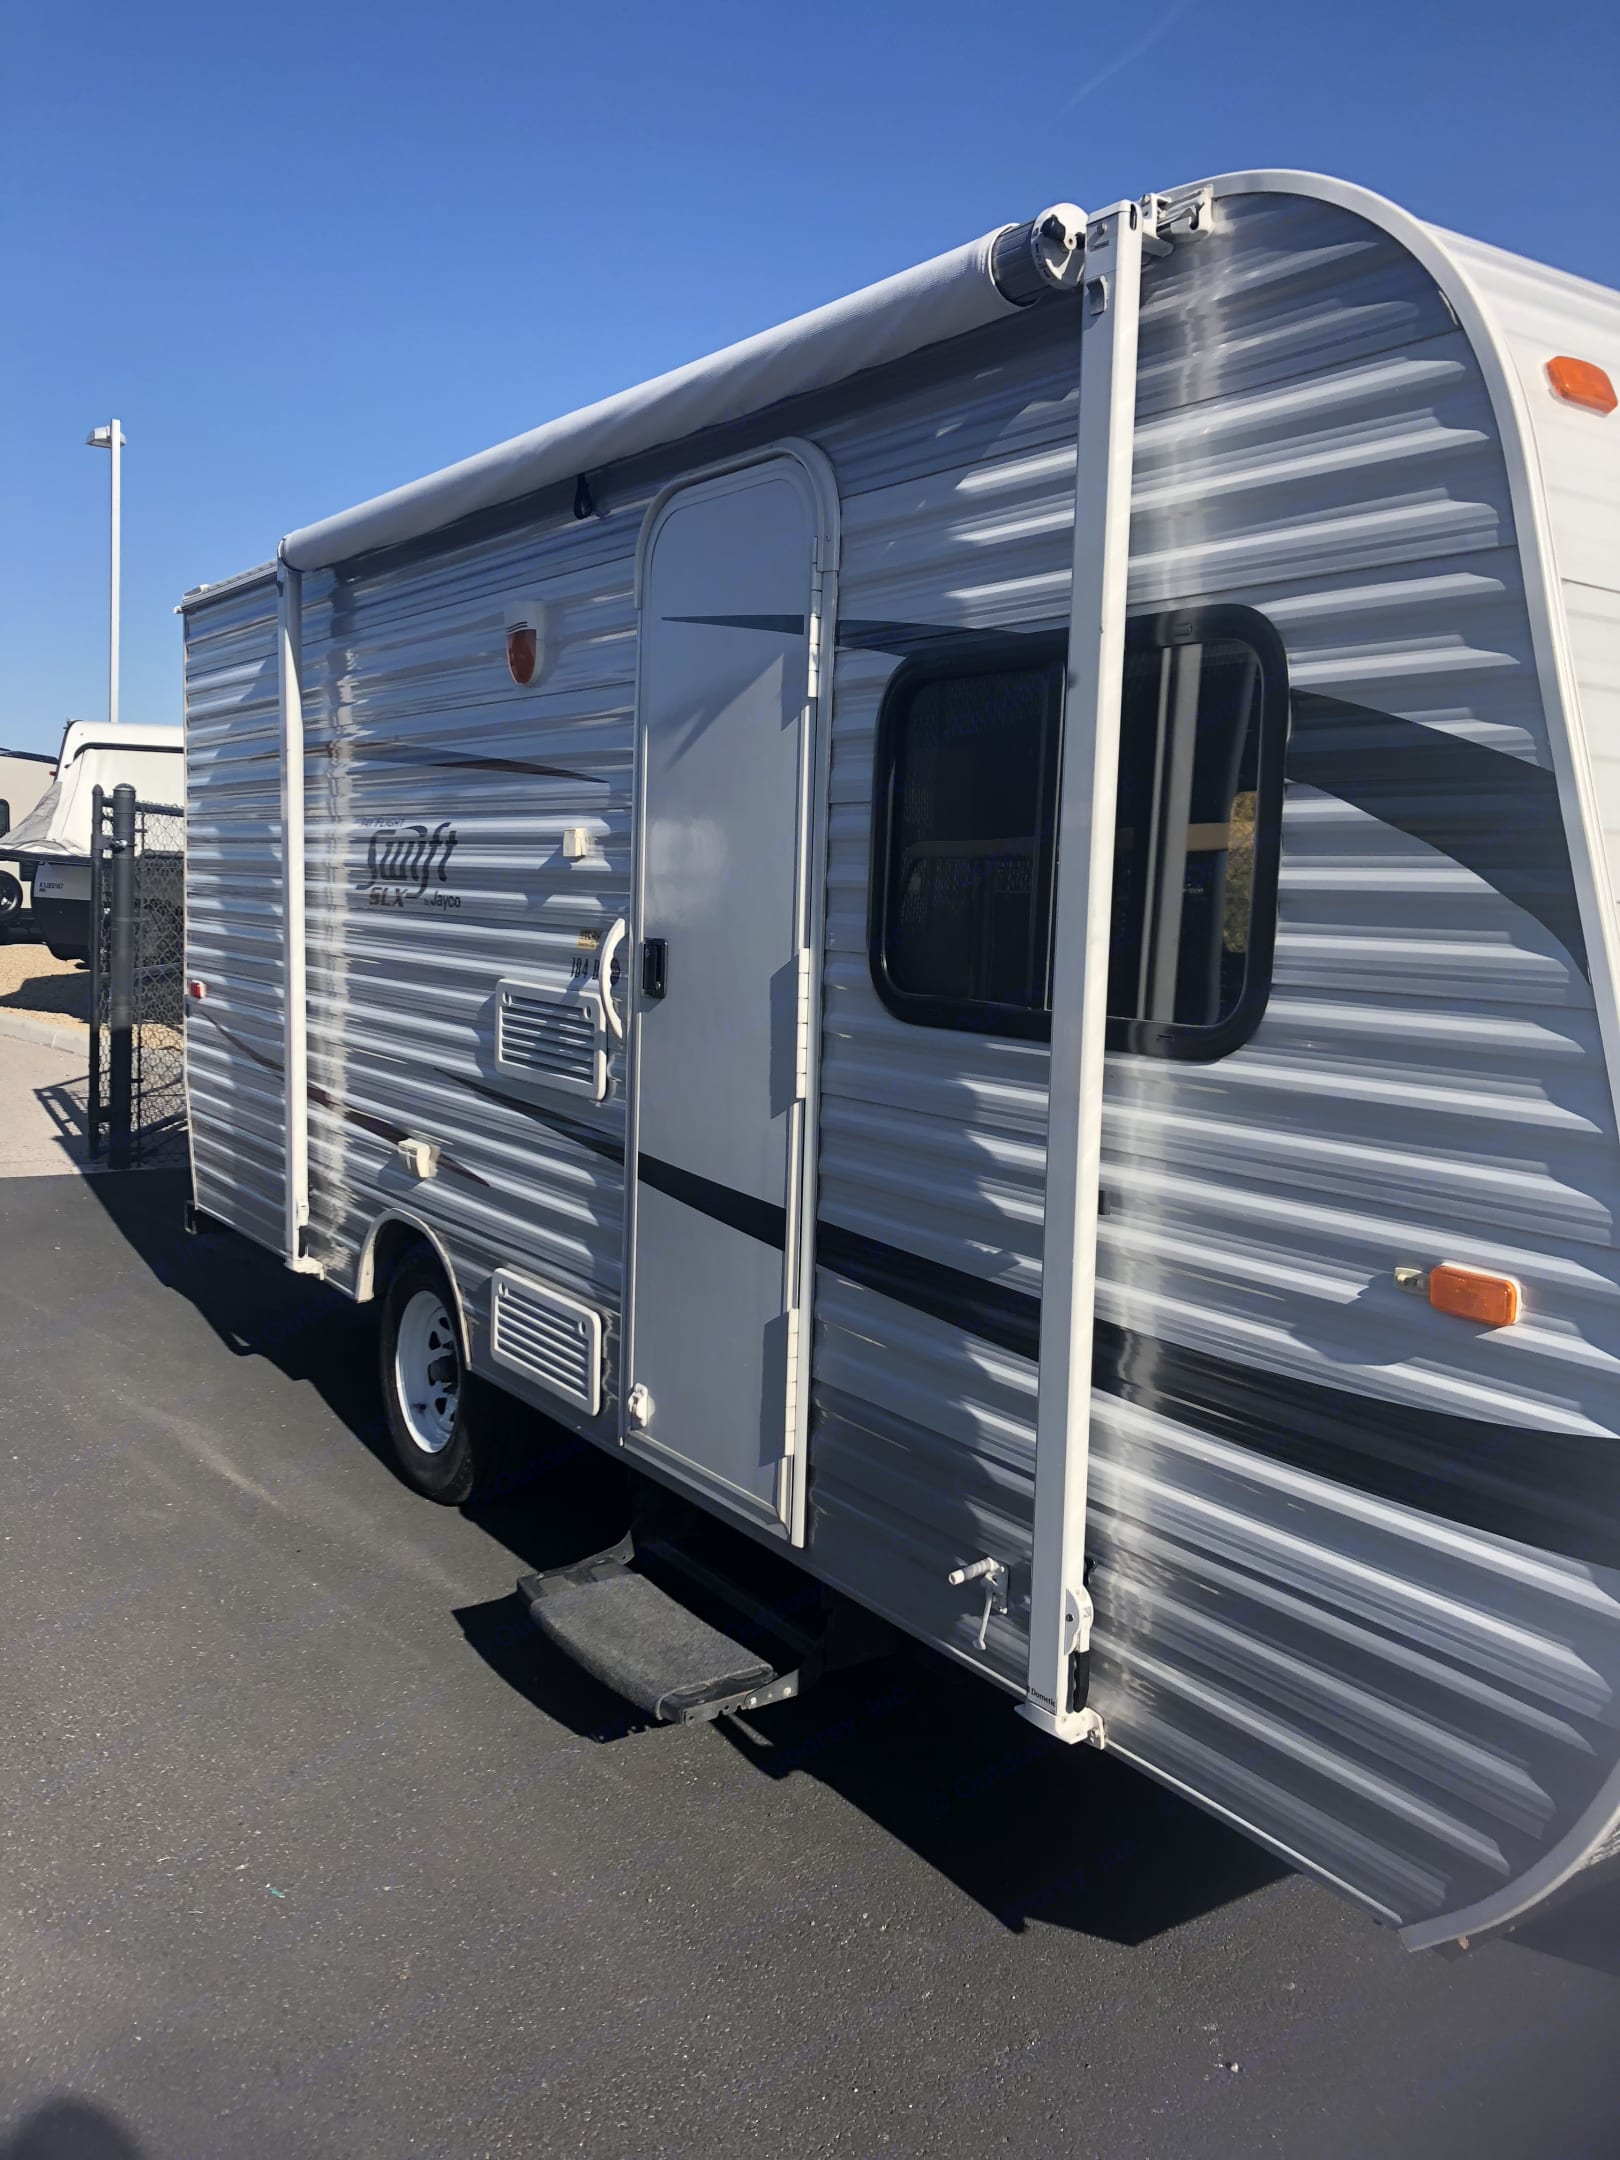 Front door with awning for shade. Jayco Jay Flight Swift 2013